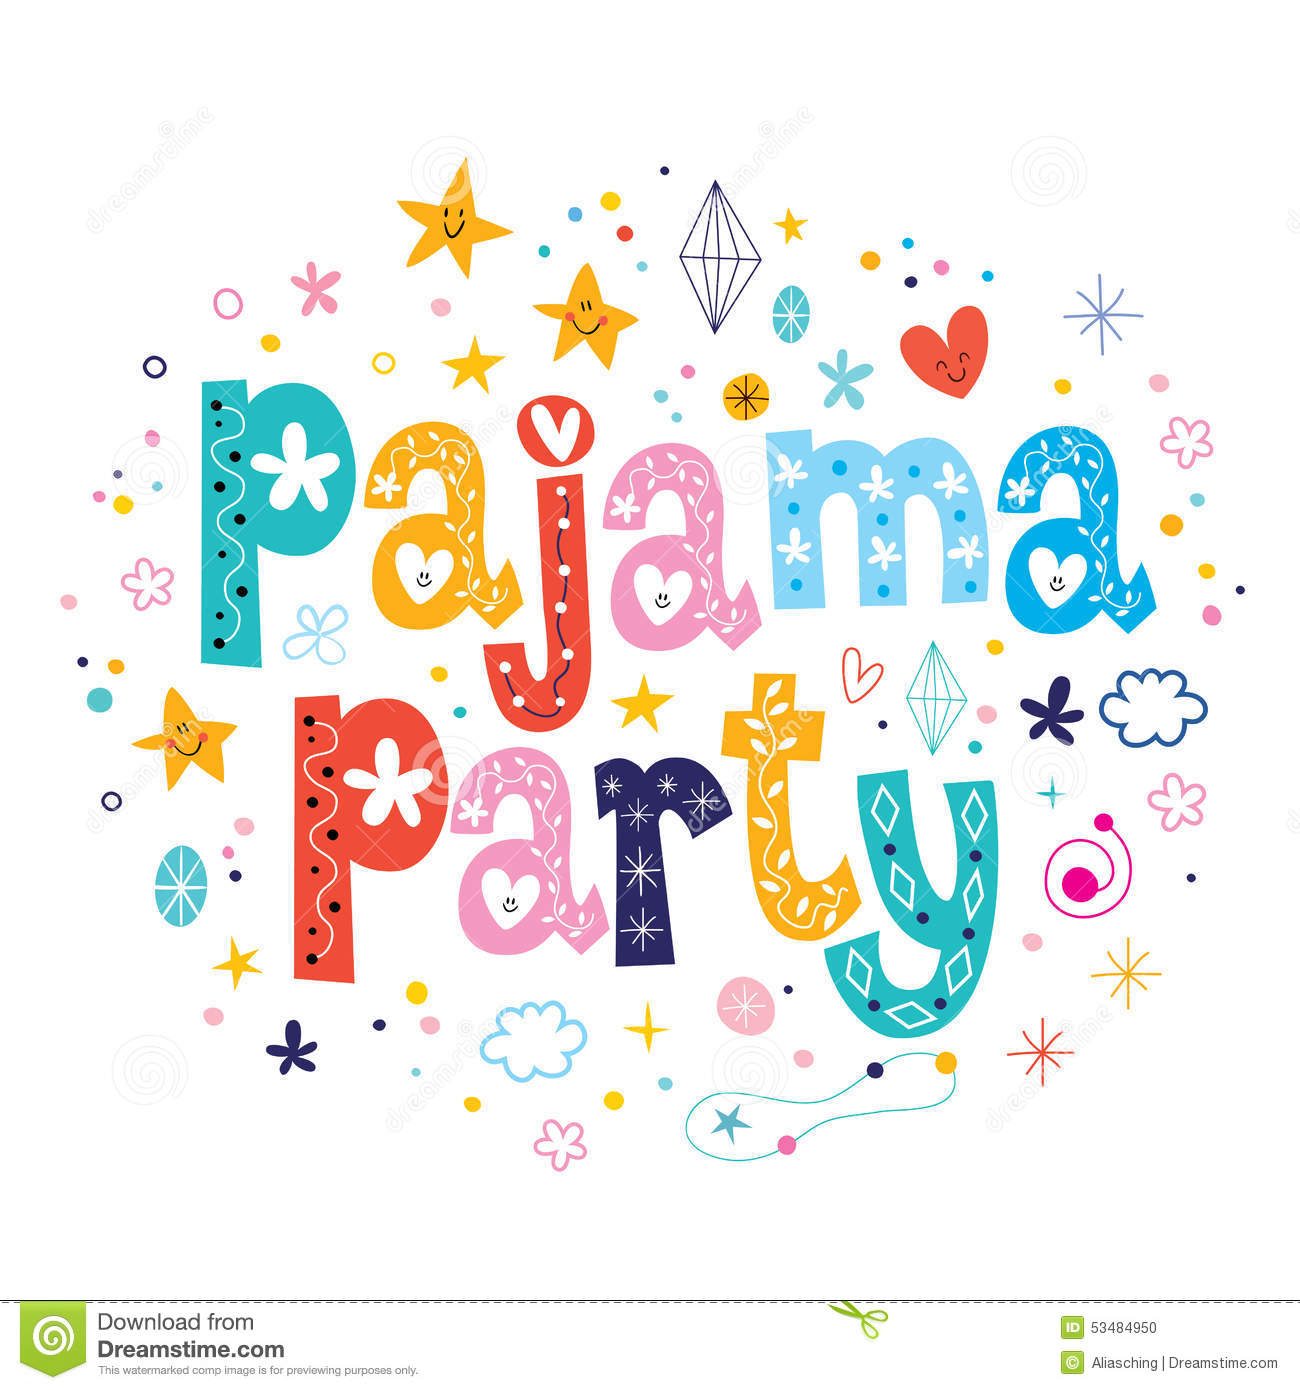 Party clipart pajamas Pajama clipart Clipart Collection Sleepover